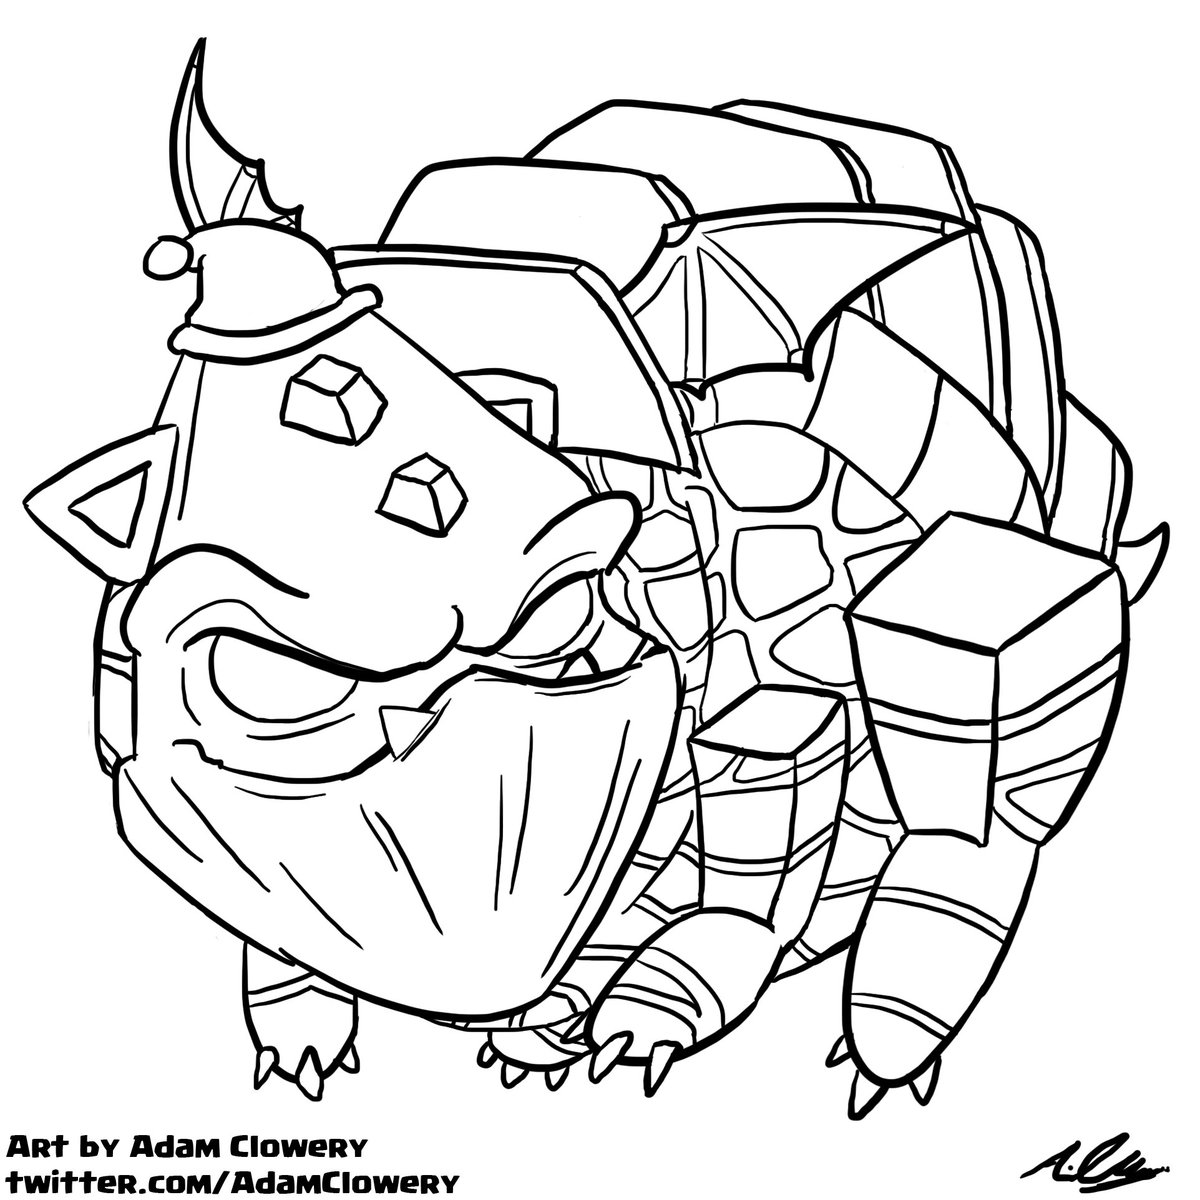 The Best Free Adam Drawing Images Download From 322 Free